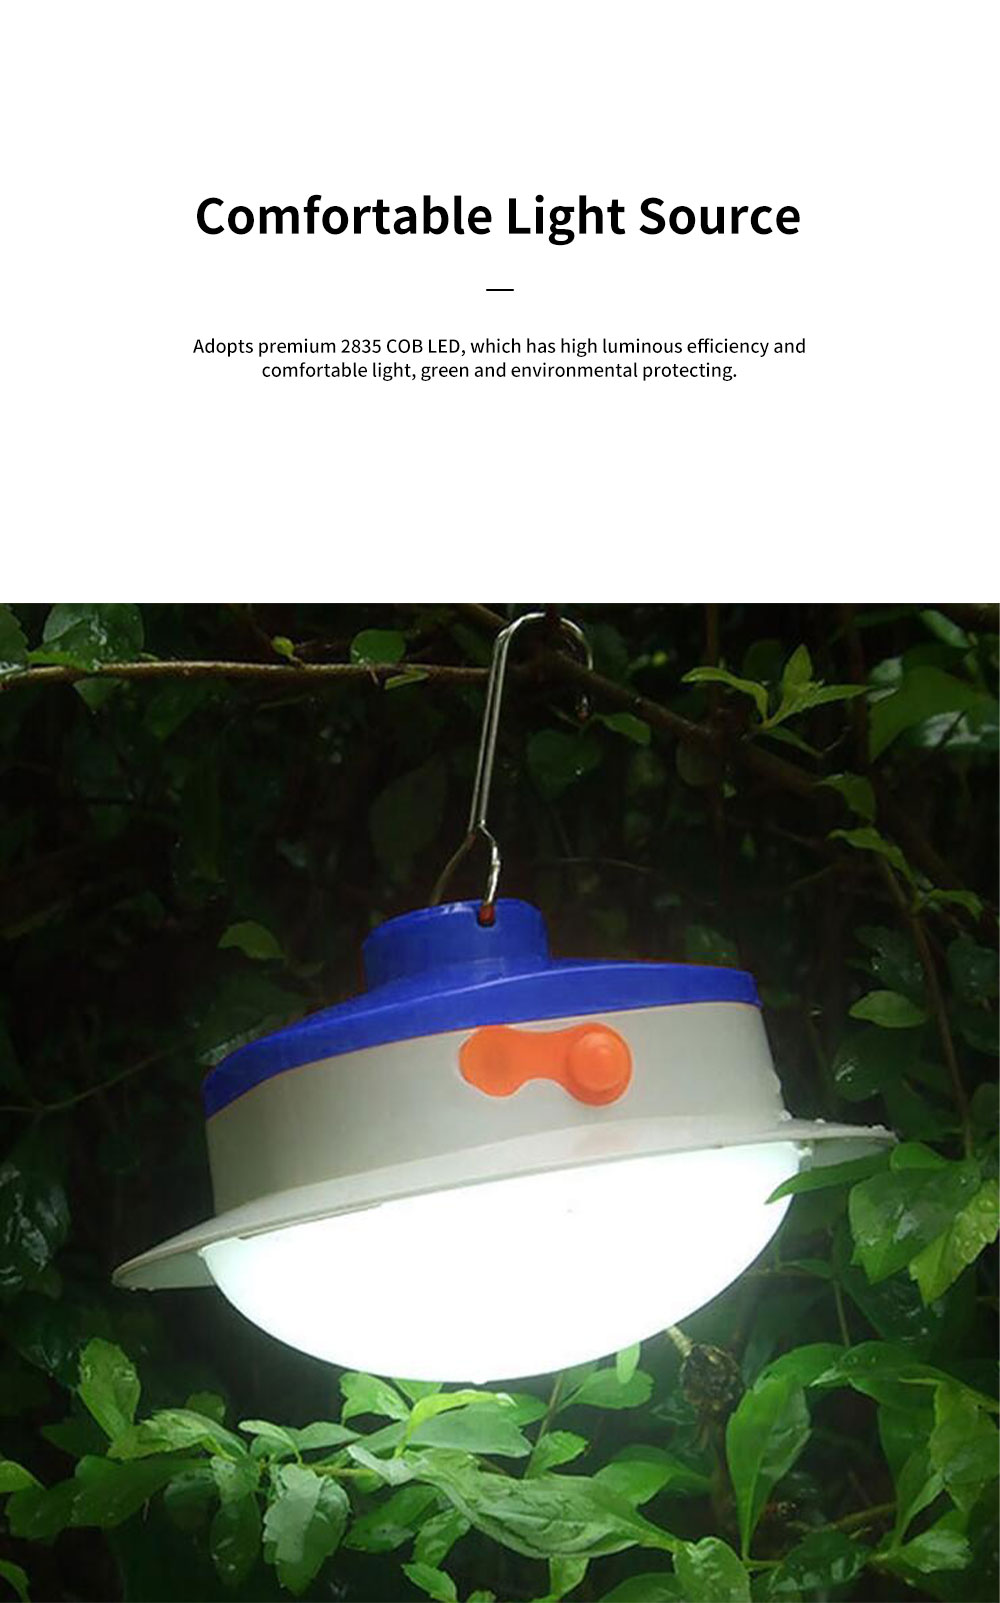 Solar IP65 Waterproof Split Lamp Outdoor Spotlight with 2200mAh Lithium Battery for Courtyard Lawn Wall Lighting 2